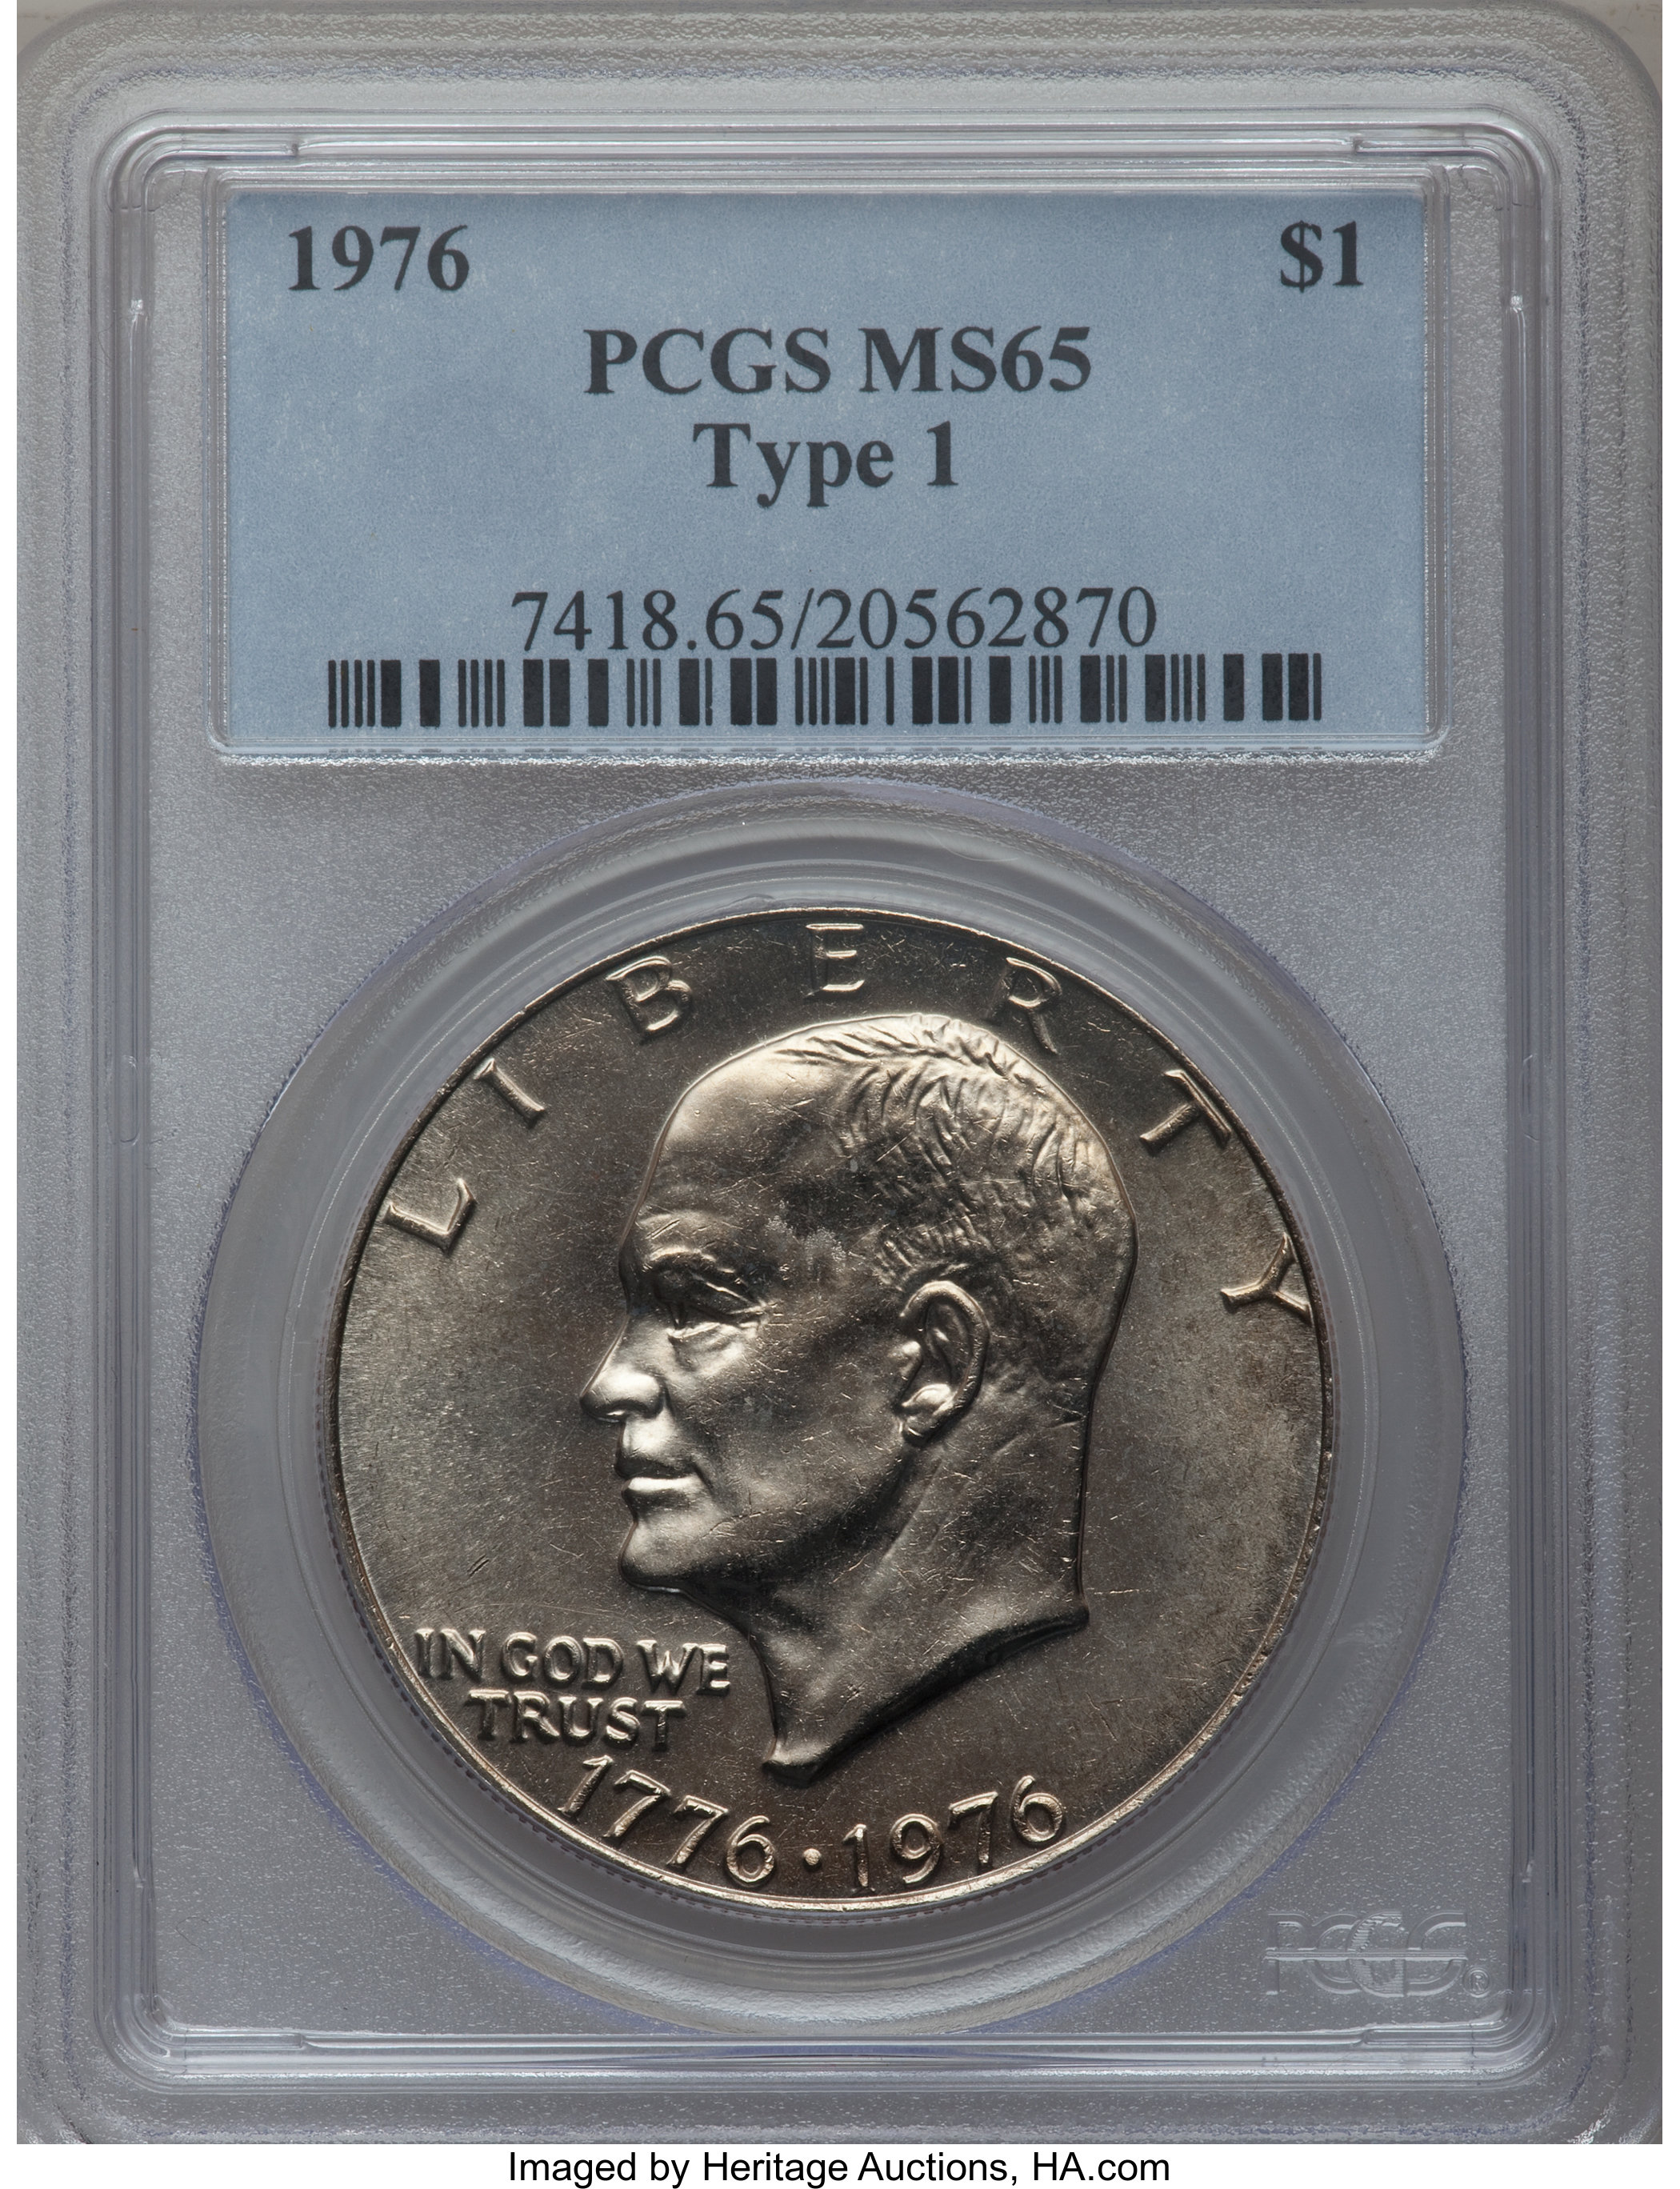 1976 TYpe 2 Choice Ucirculated  Eisenhower Dollar PCGS MS65